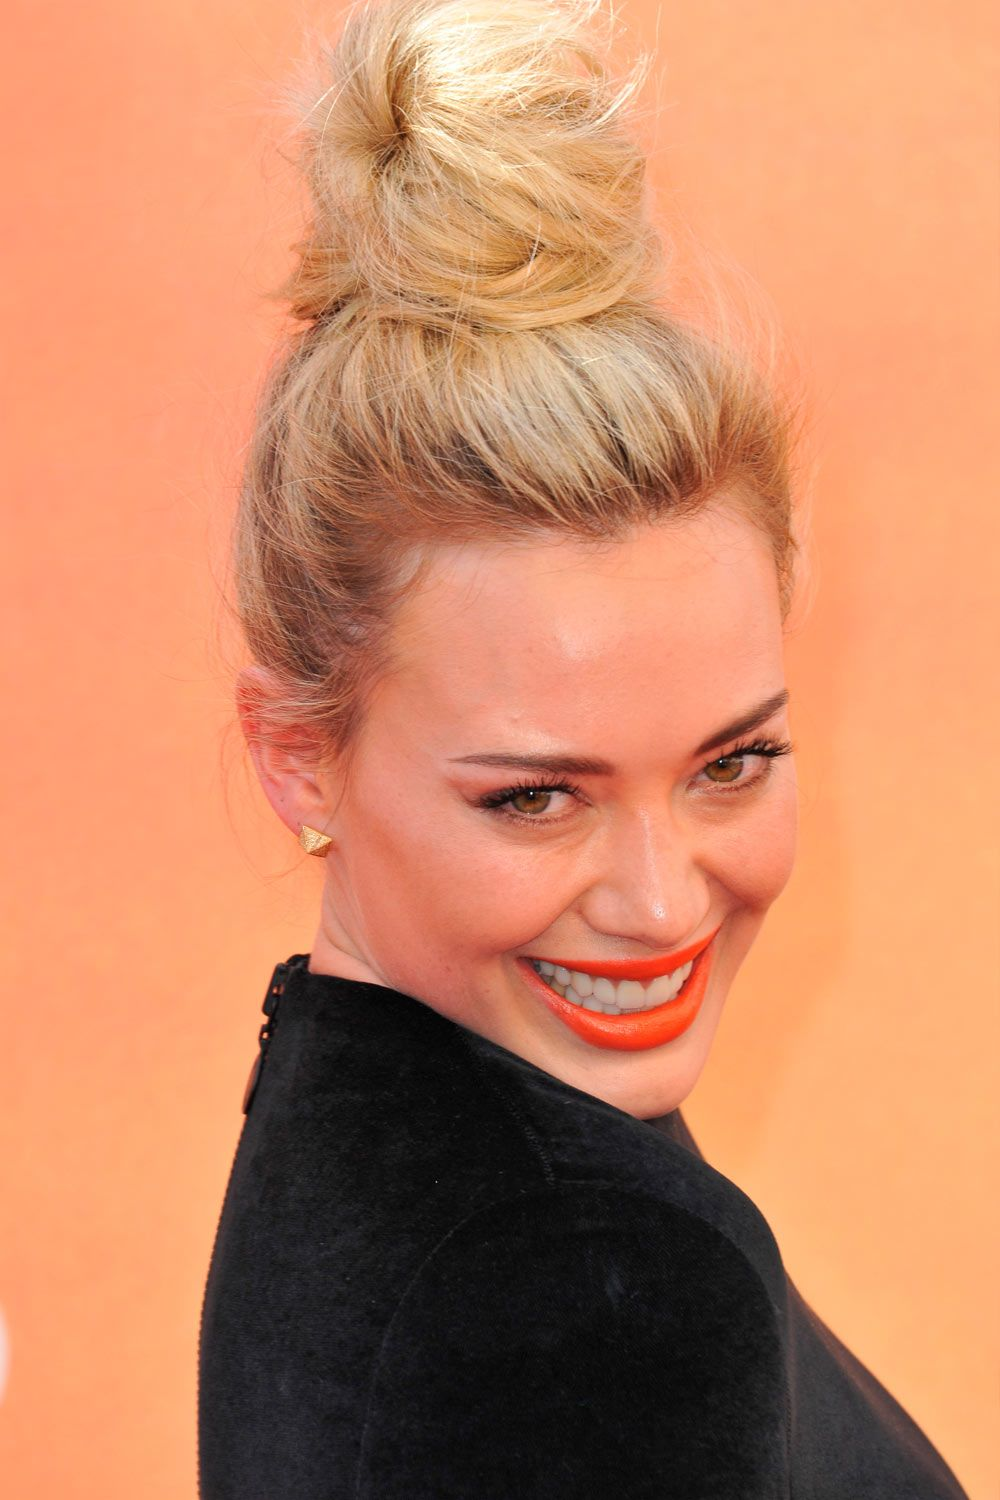 Messy Blonde Hairstyle With Top Bun